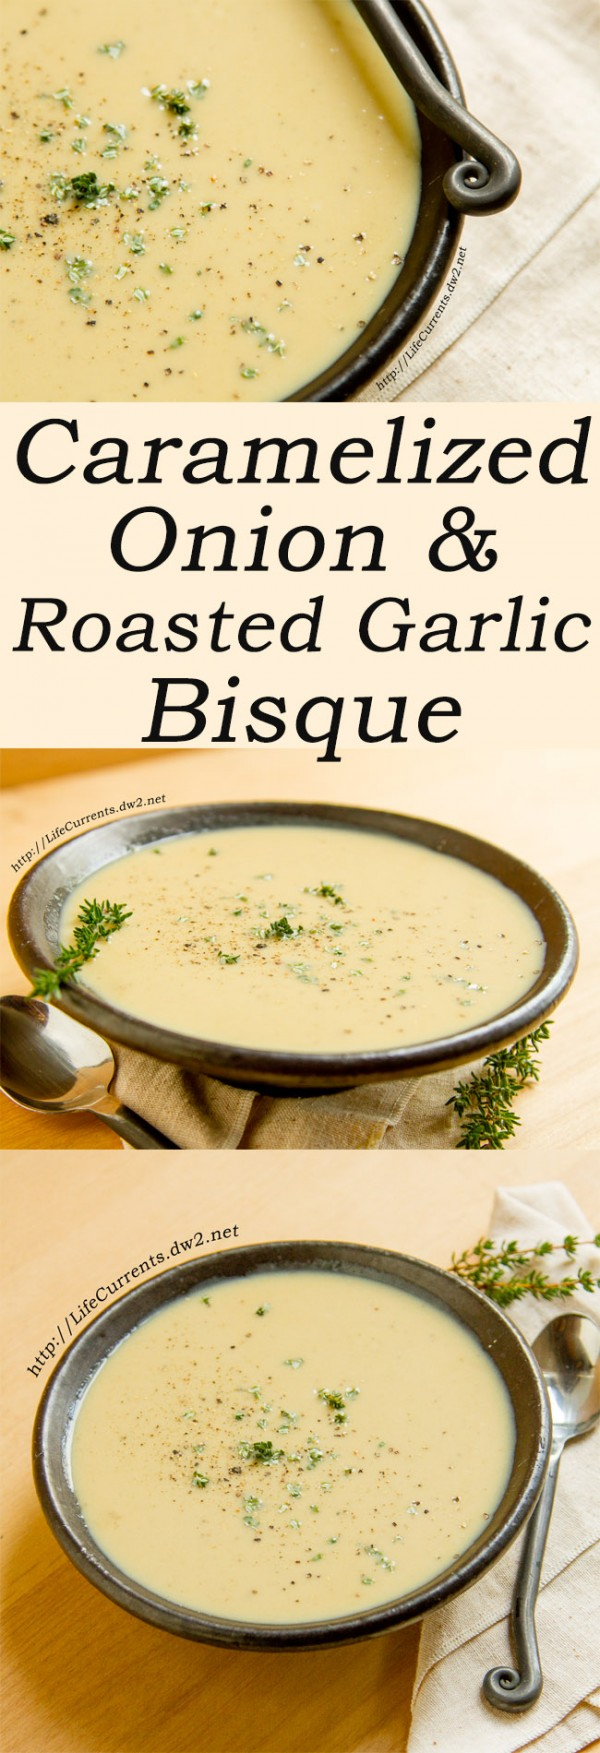 Get the recipe Caramelized Onion and Roasted Garlic Bisque @recipes_to_go